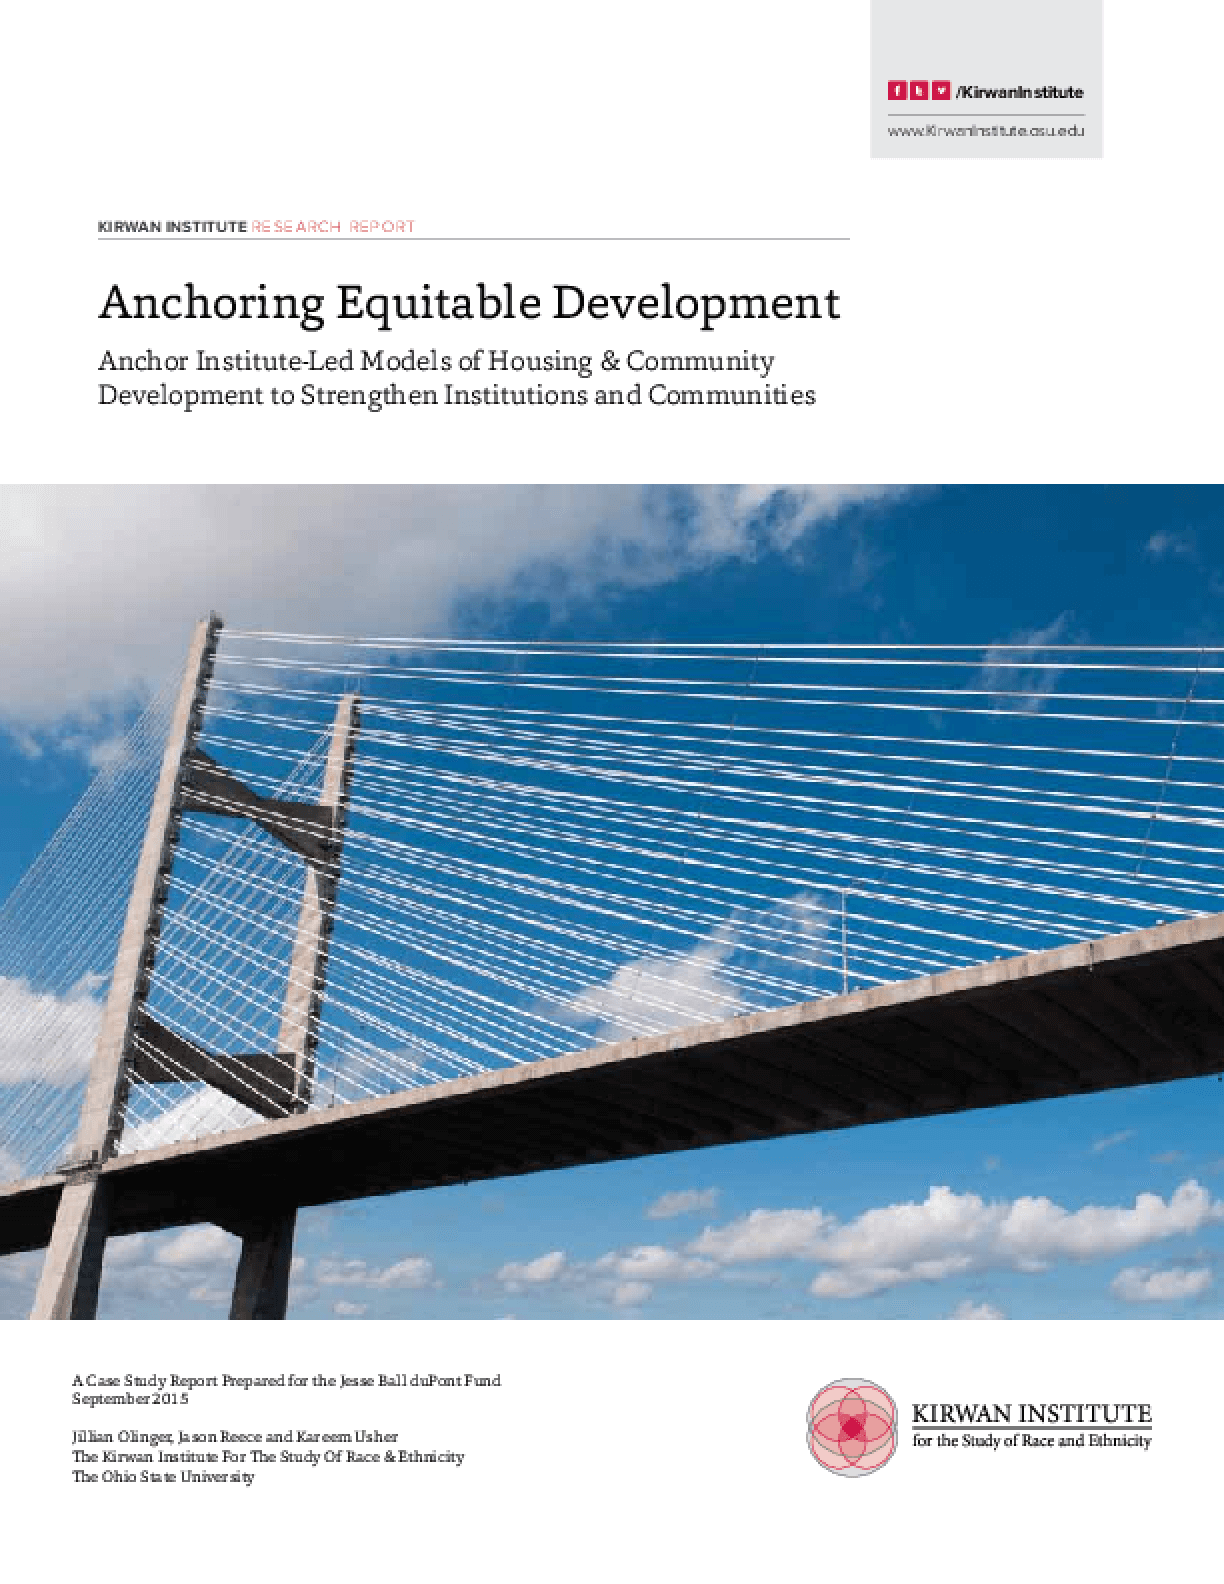 Anchoring Equitable Development: Anchor Institute-Led Models of Housing and Community Development to Strengthen Institutions and Communities